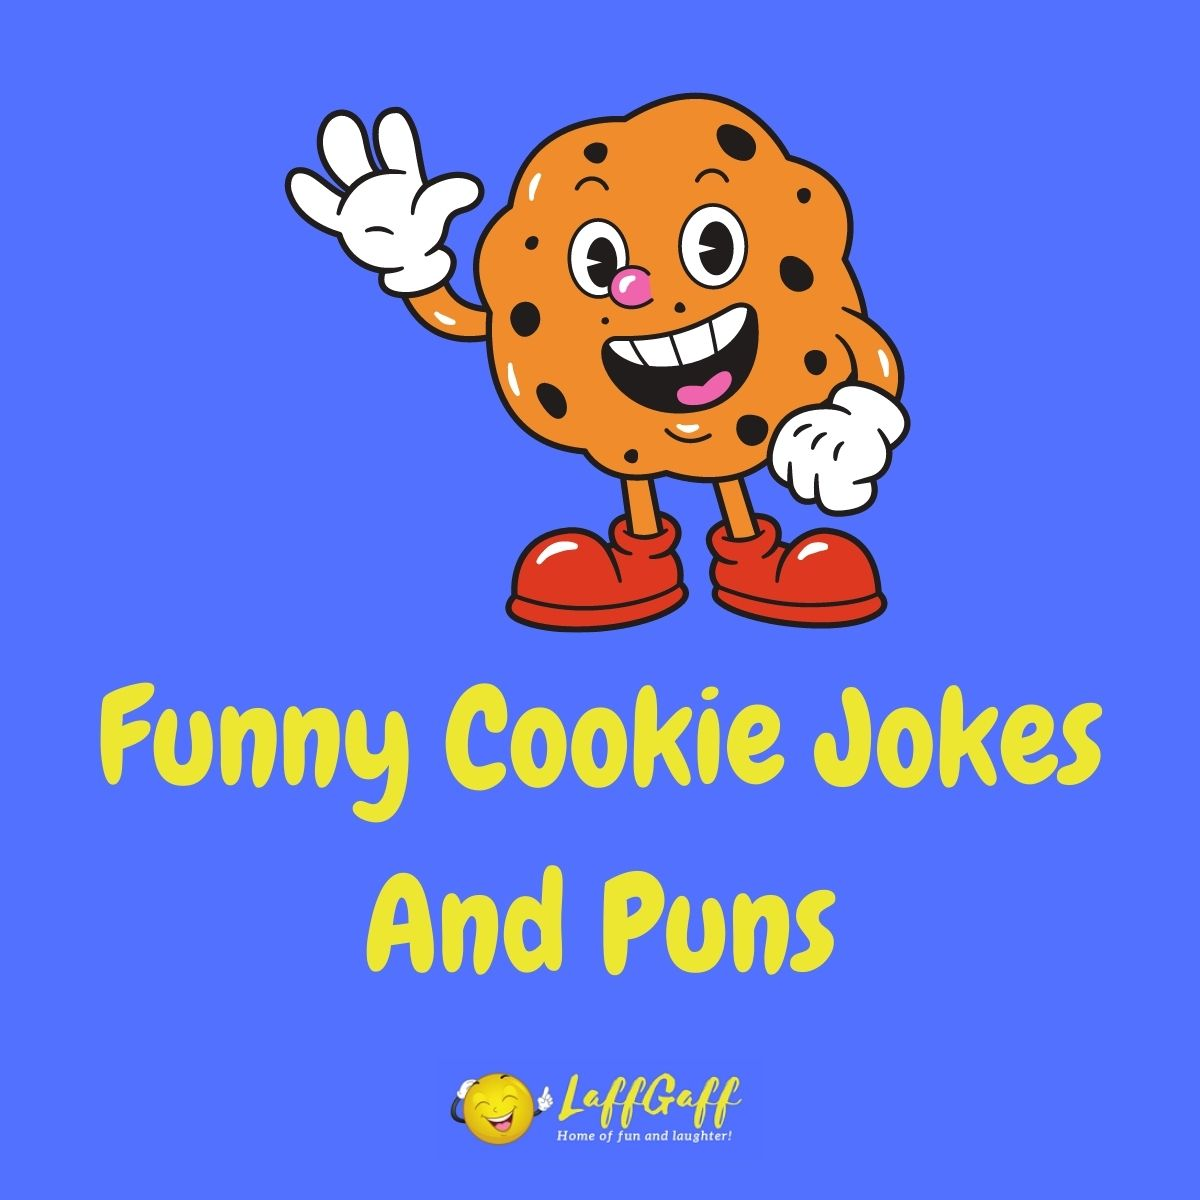 Featured image for a page of funny cookie jokes and puns.